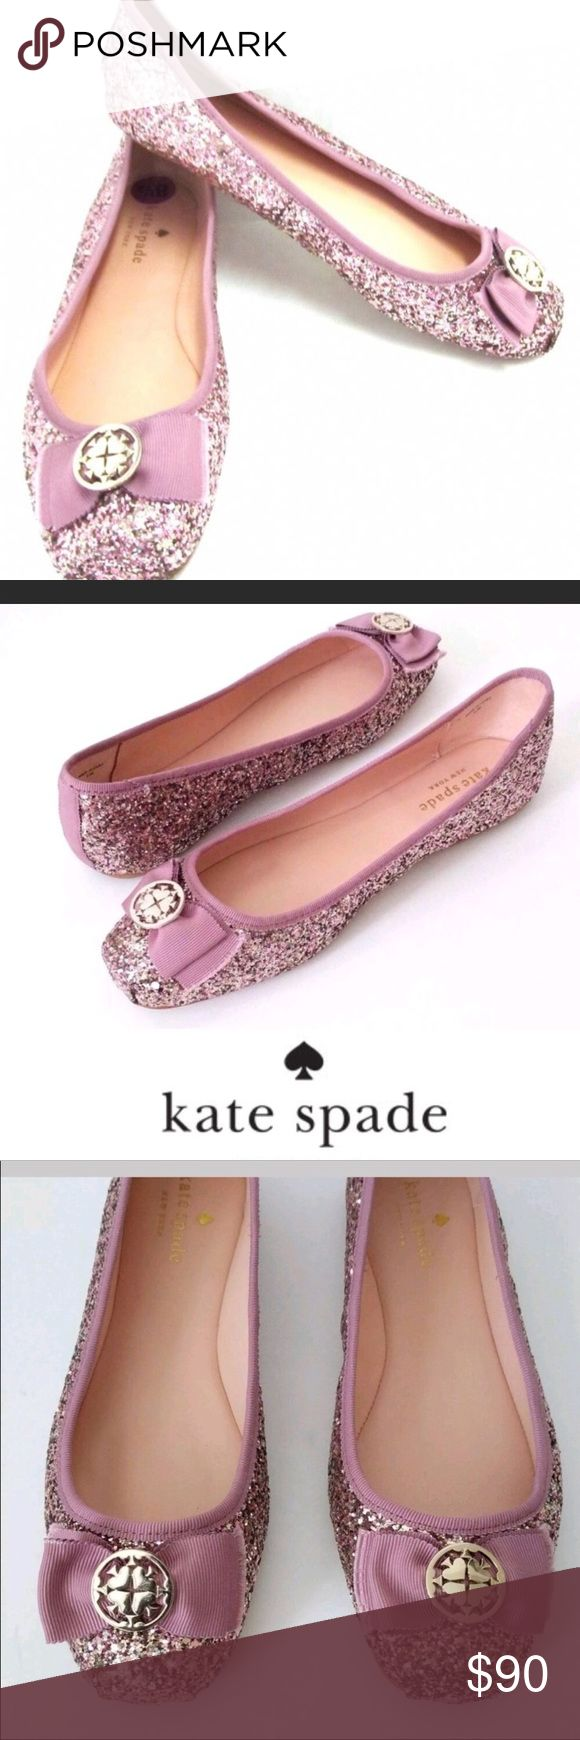 Kate spade Fontana too. 8.5. New. Offers please!! Gorgeous . Feminine. Light weight ballet flat. It will make you smile when I'm you see it on your feet, they look so good!.  No box. I have other sizes for sale too. Just ask. kate spade Shoes Flats & Loafers